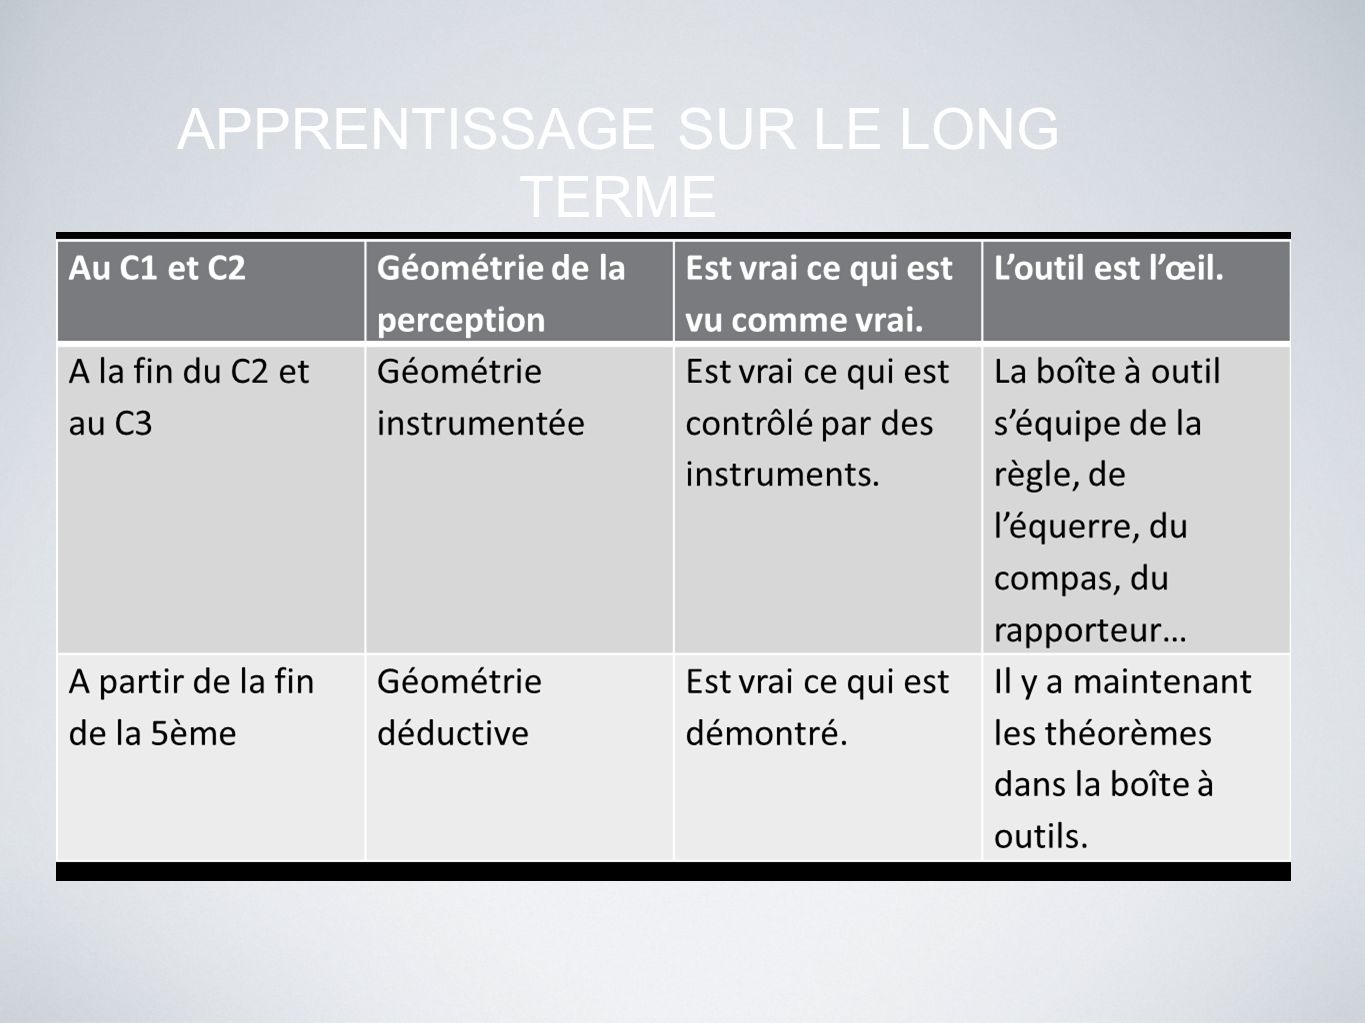 APPRENTISSAGE SUR LE LONG TERME